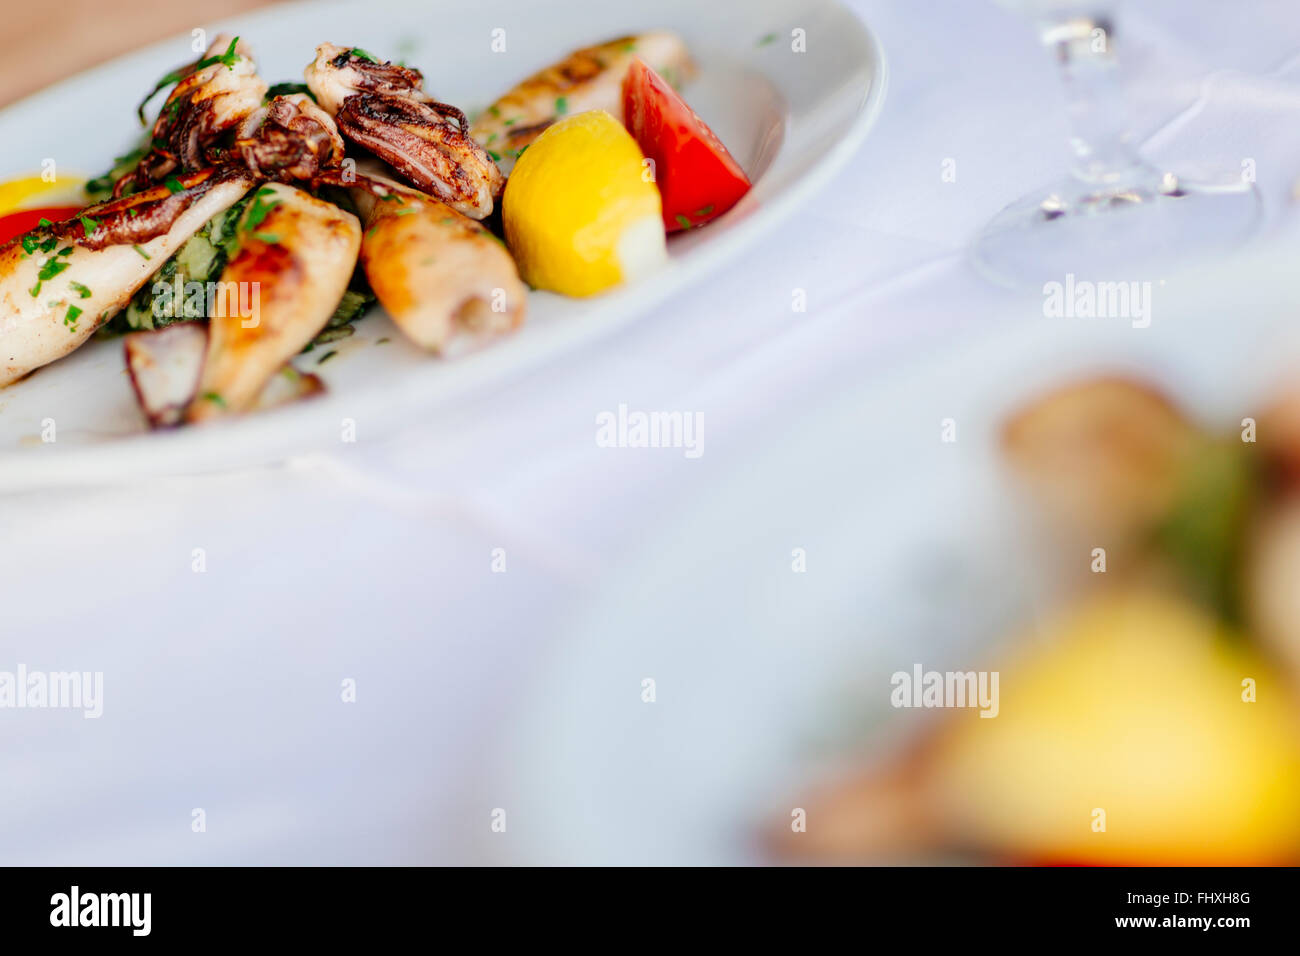 Grilled squid served on plate - Stock Image